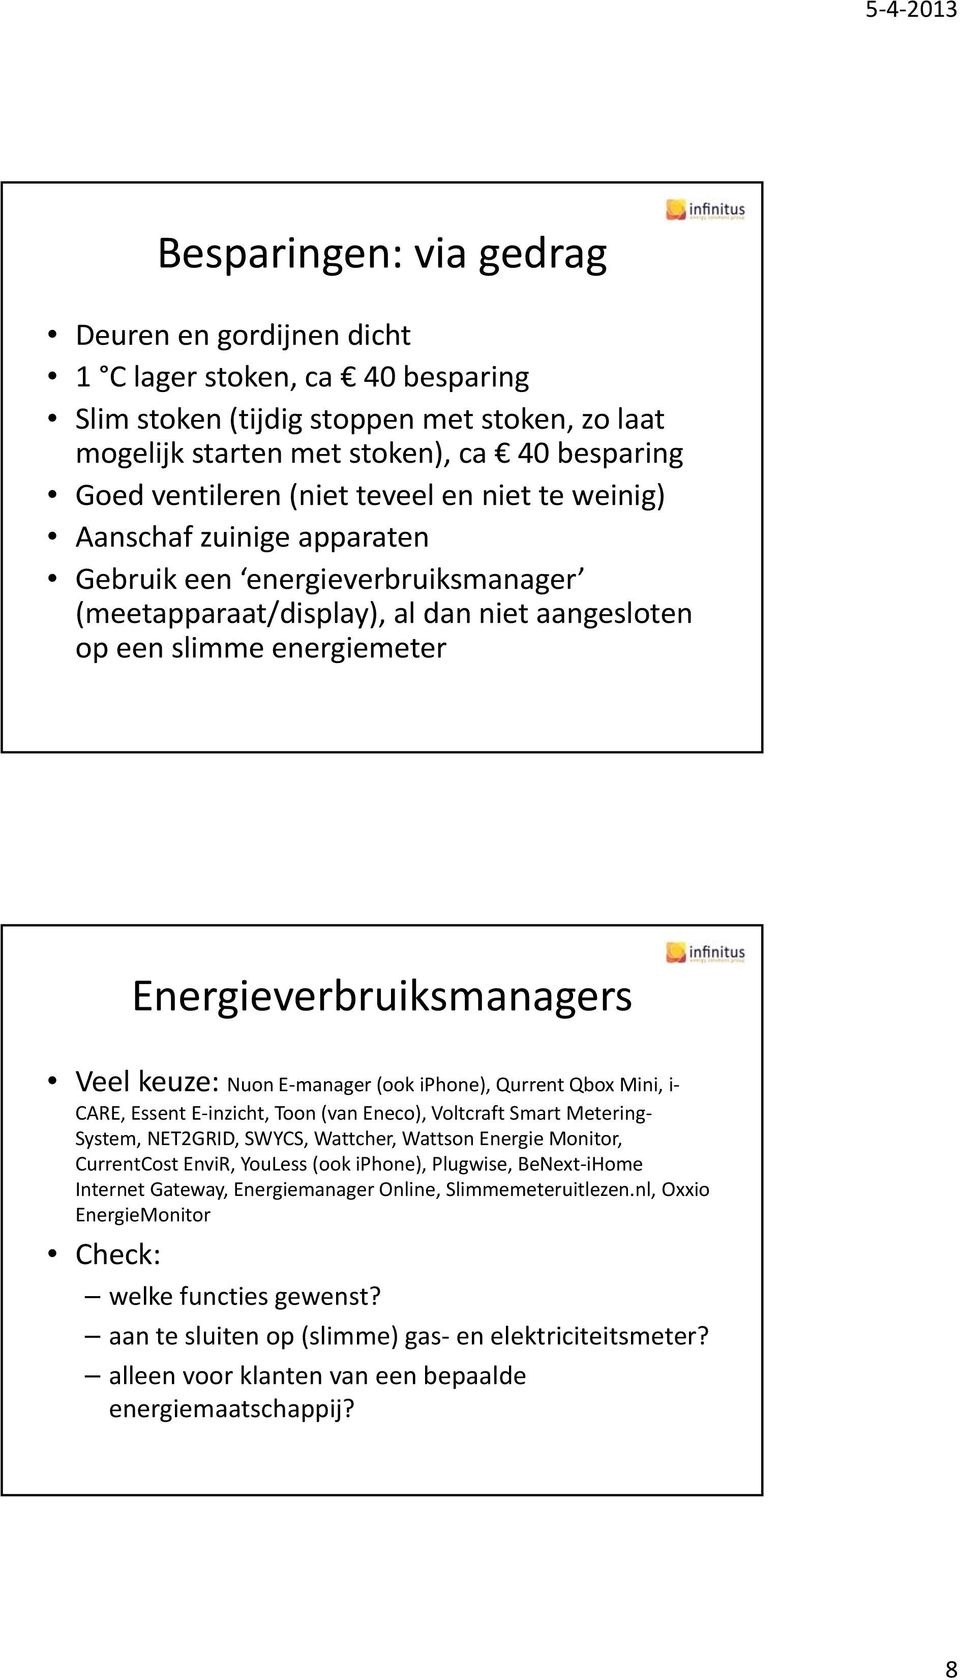 keuze: Nuon E manager (ook iphone), Qurrent Qbox Mini, i CARE, Essent E inzicht, Toon (van Eneco), Voltcraft Smart Metering System, NET2GRID, SWYCS, Wattcher, Wattson Energie Monitor, CurrentCost